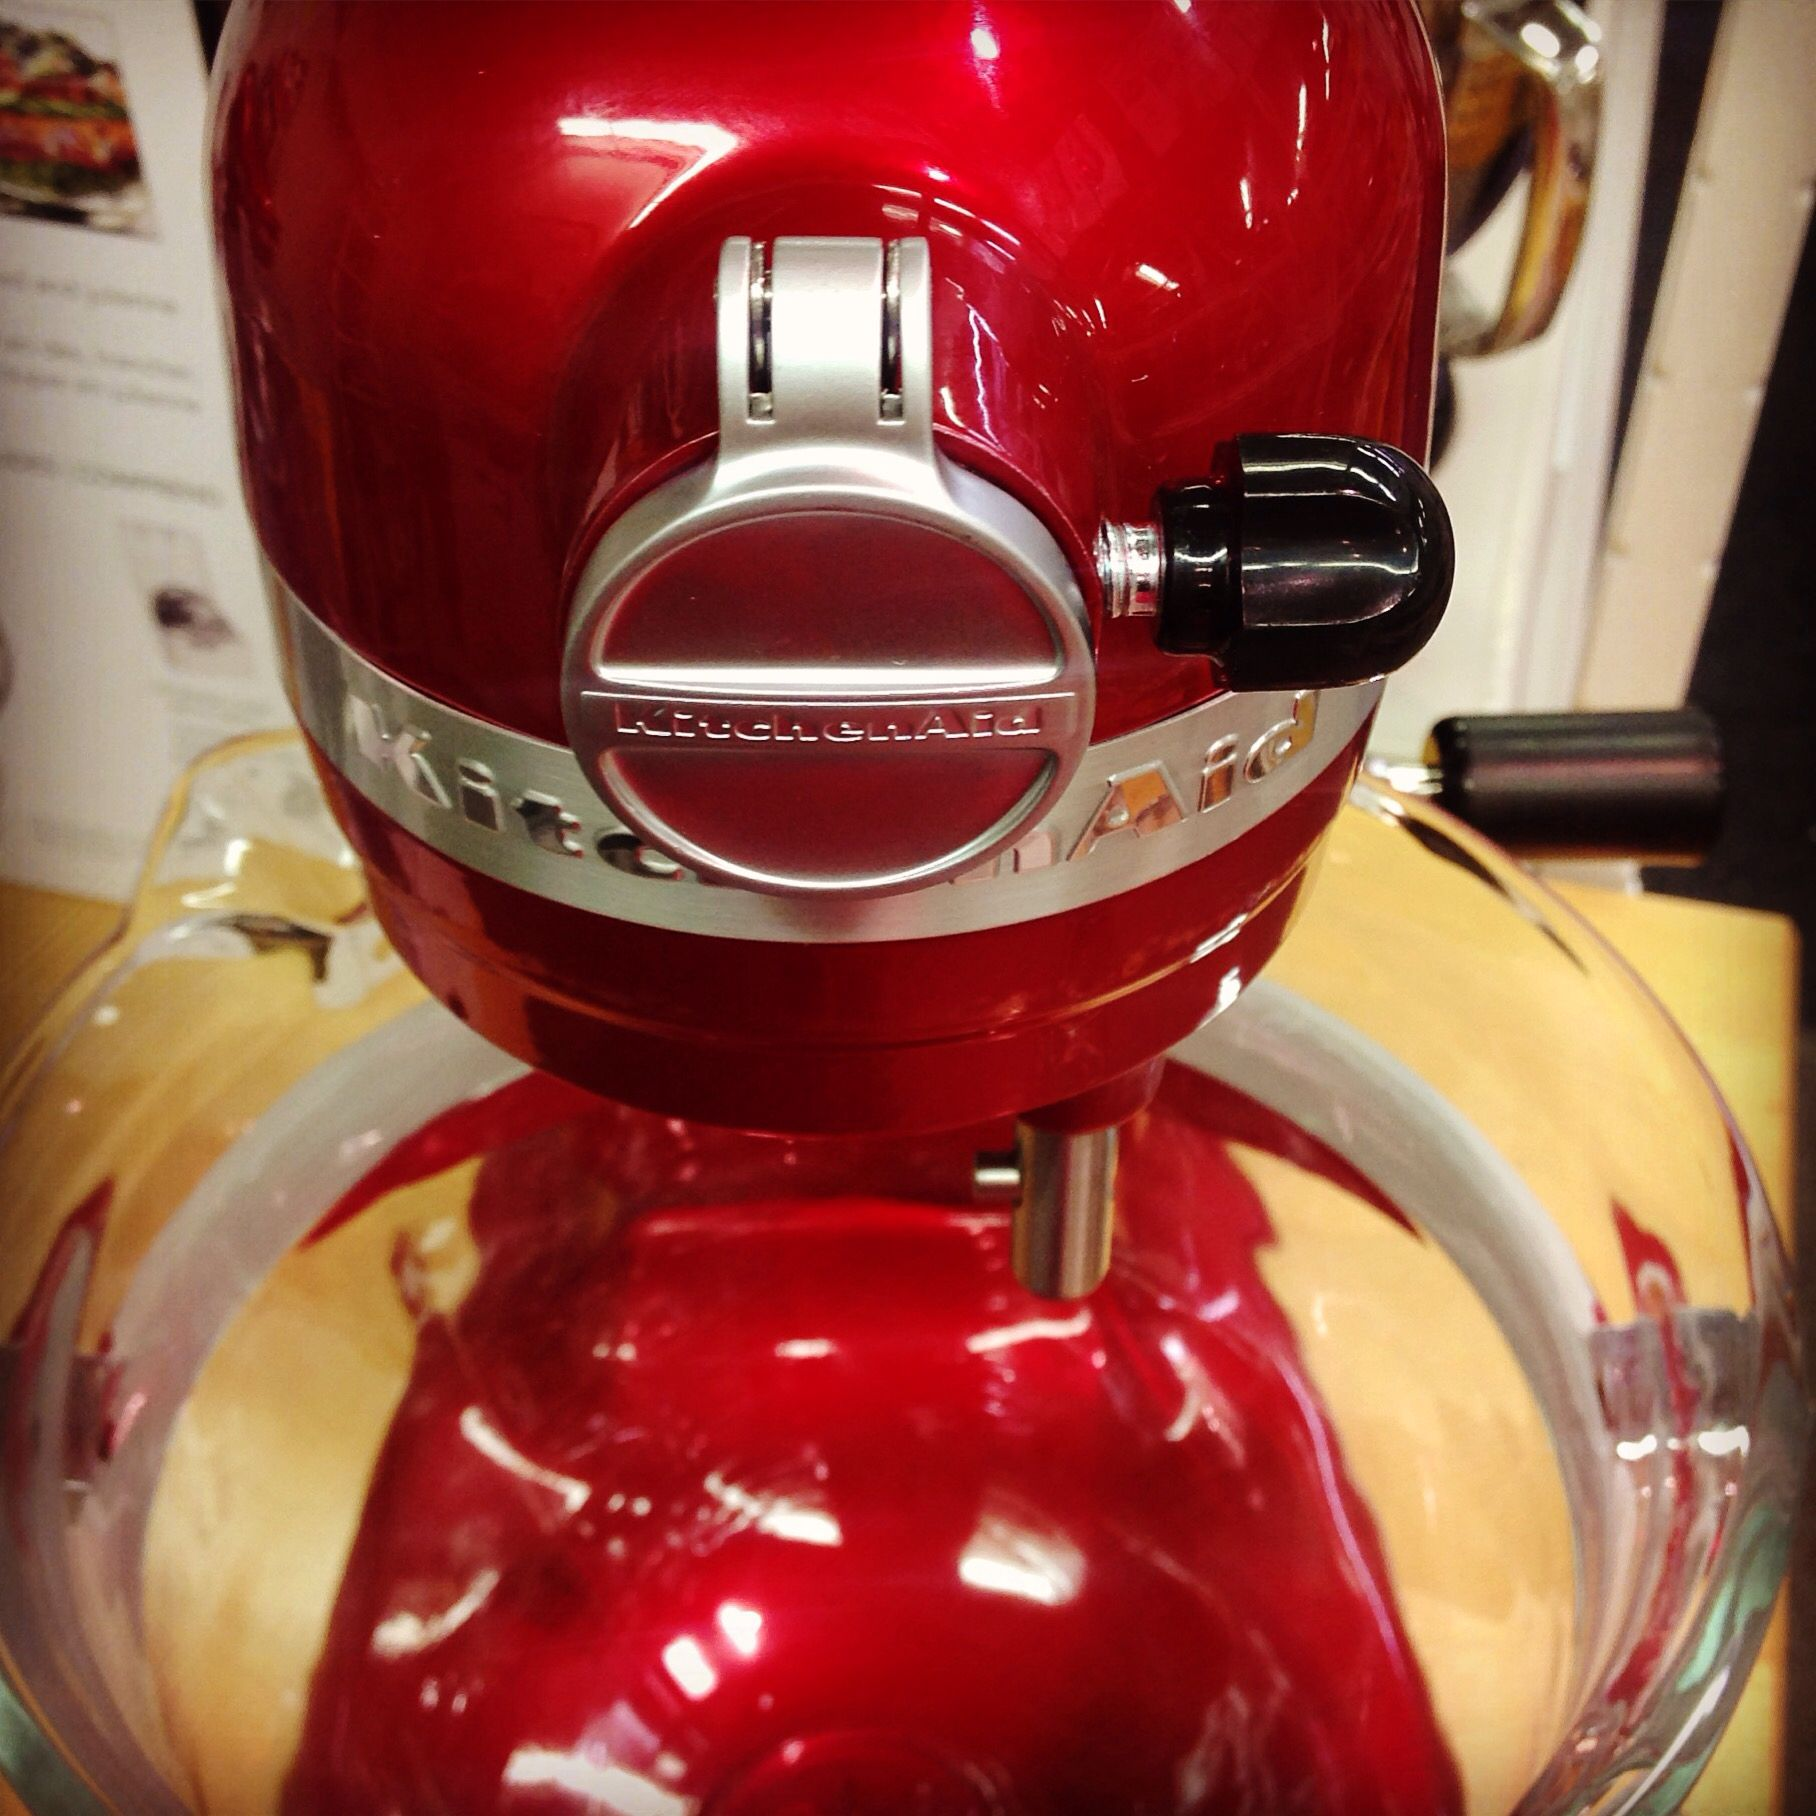 We love this 6 qt. Glass Bowl Stand mixer from KitchenAid